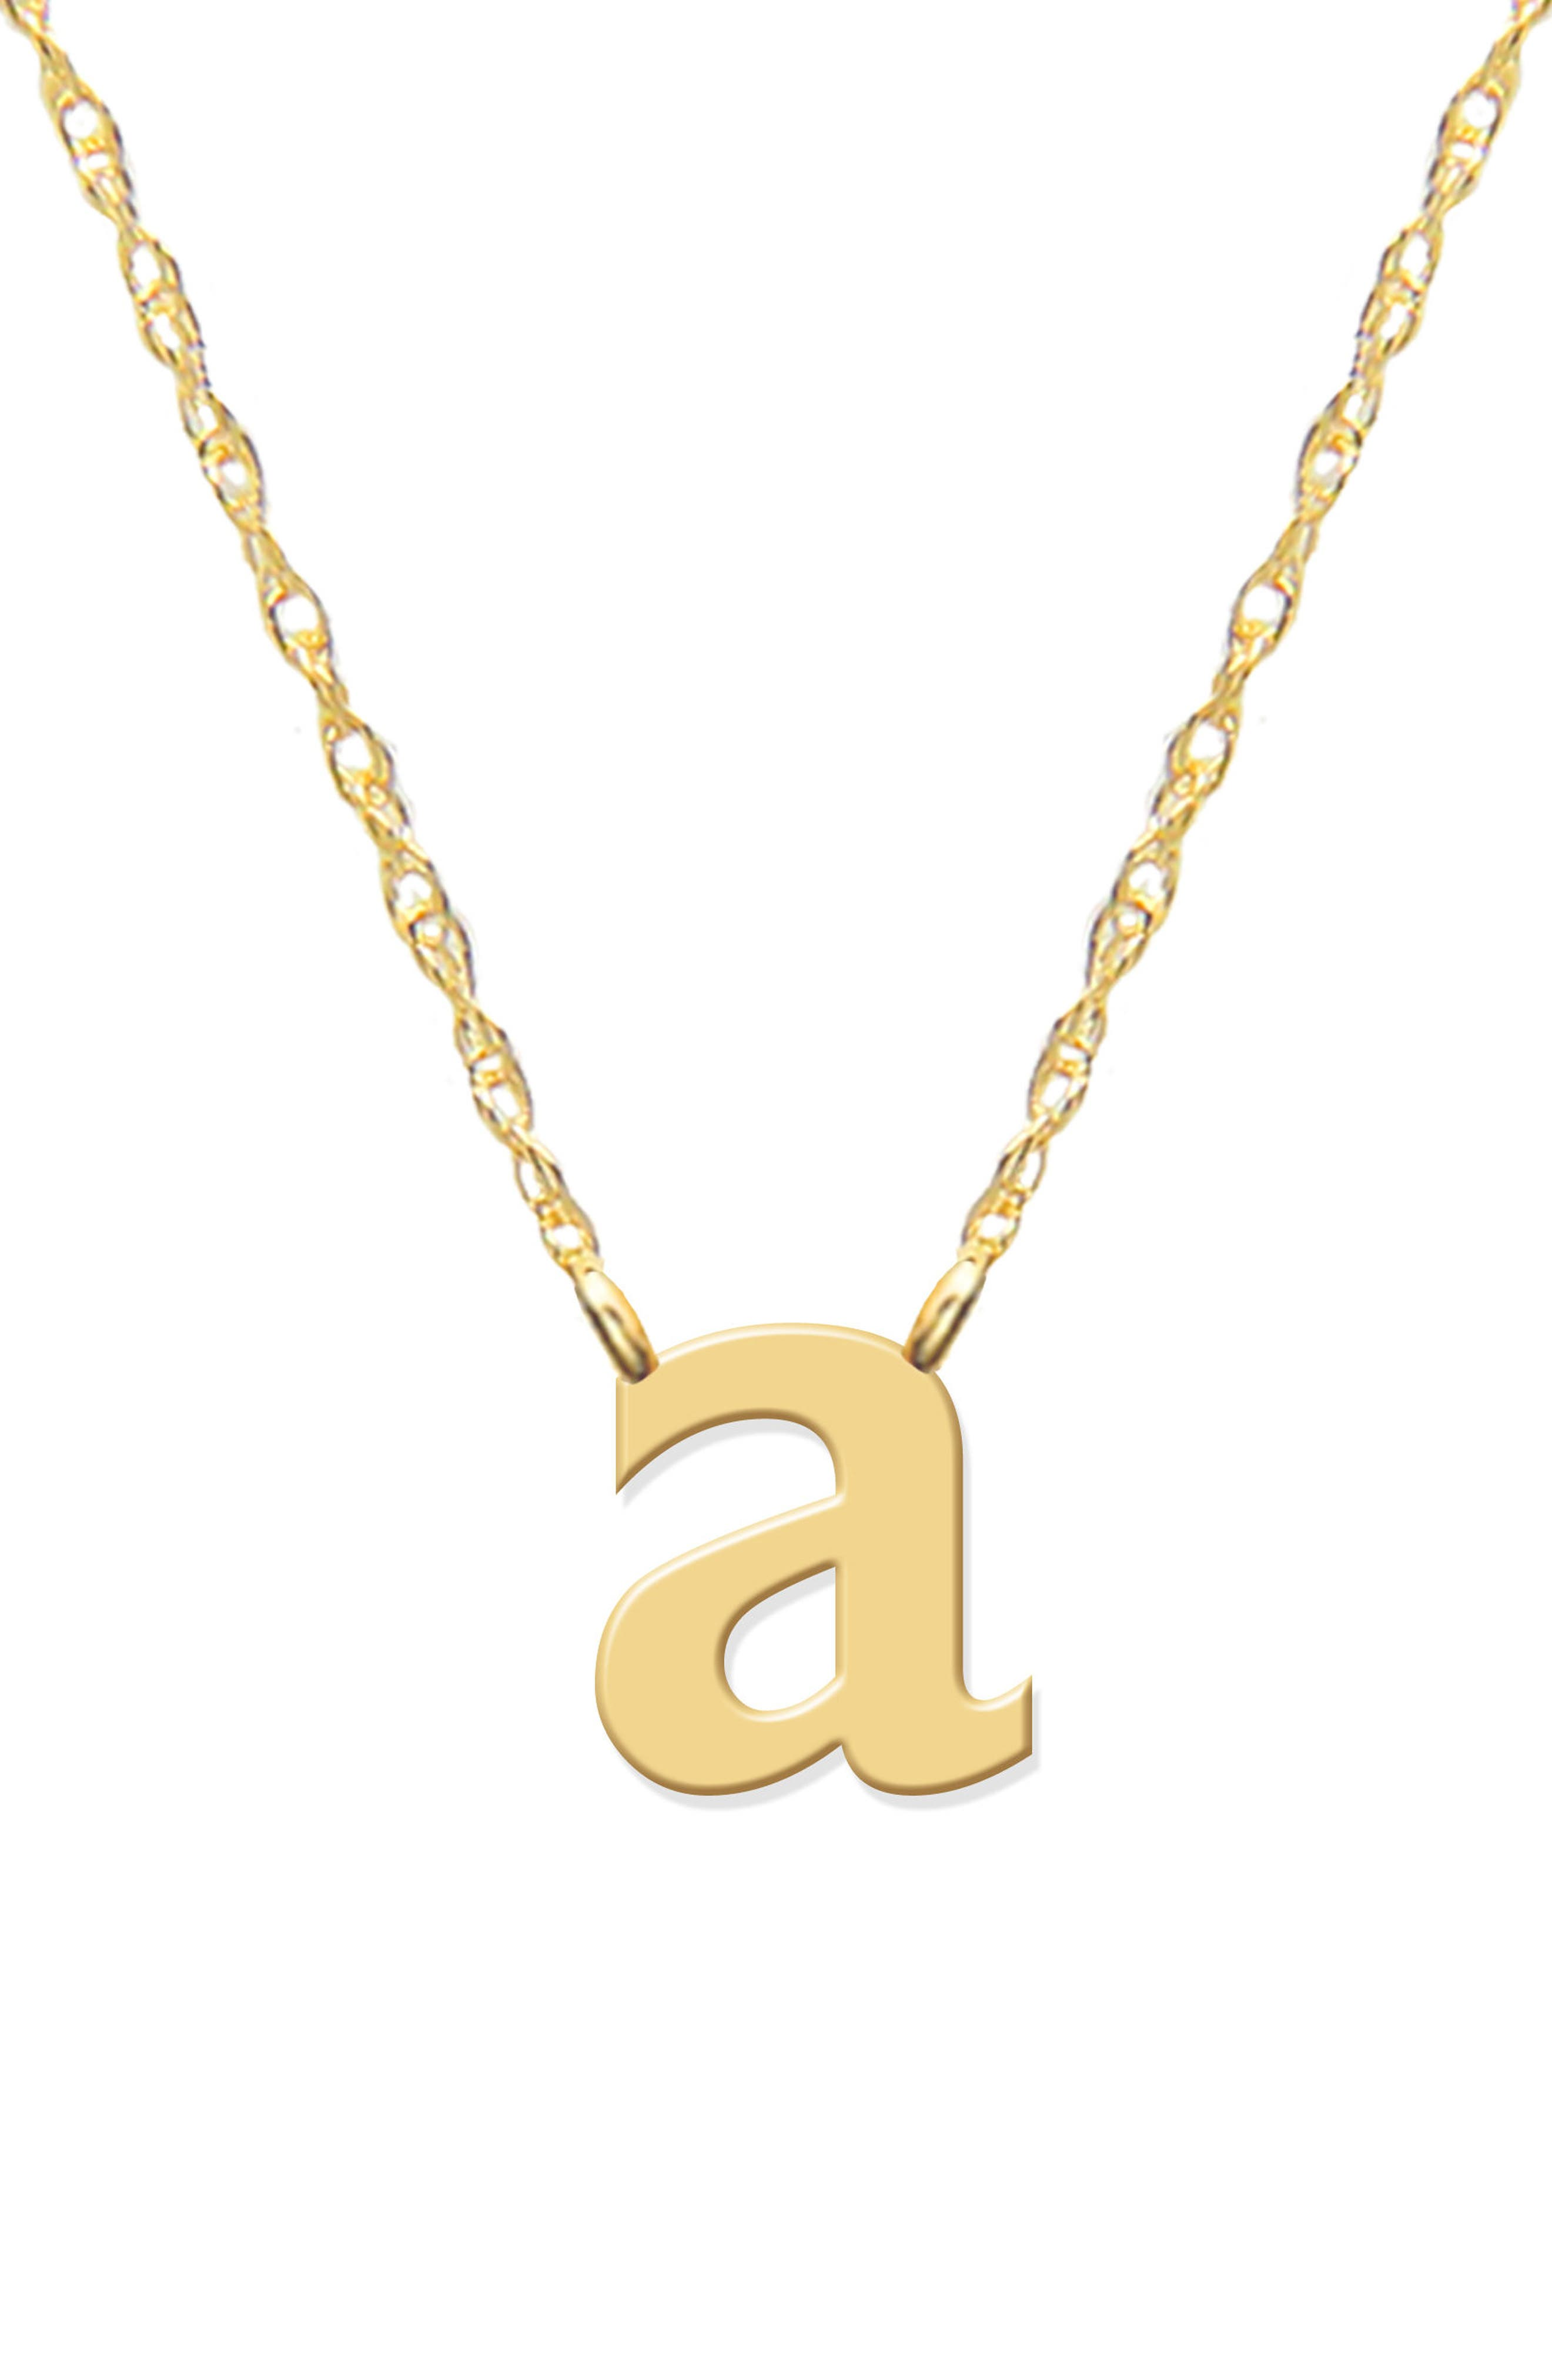 Main Image - Jane Basch Designs Lowercase Initial Pendant Necklace